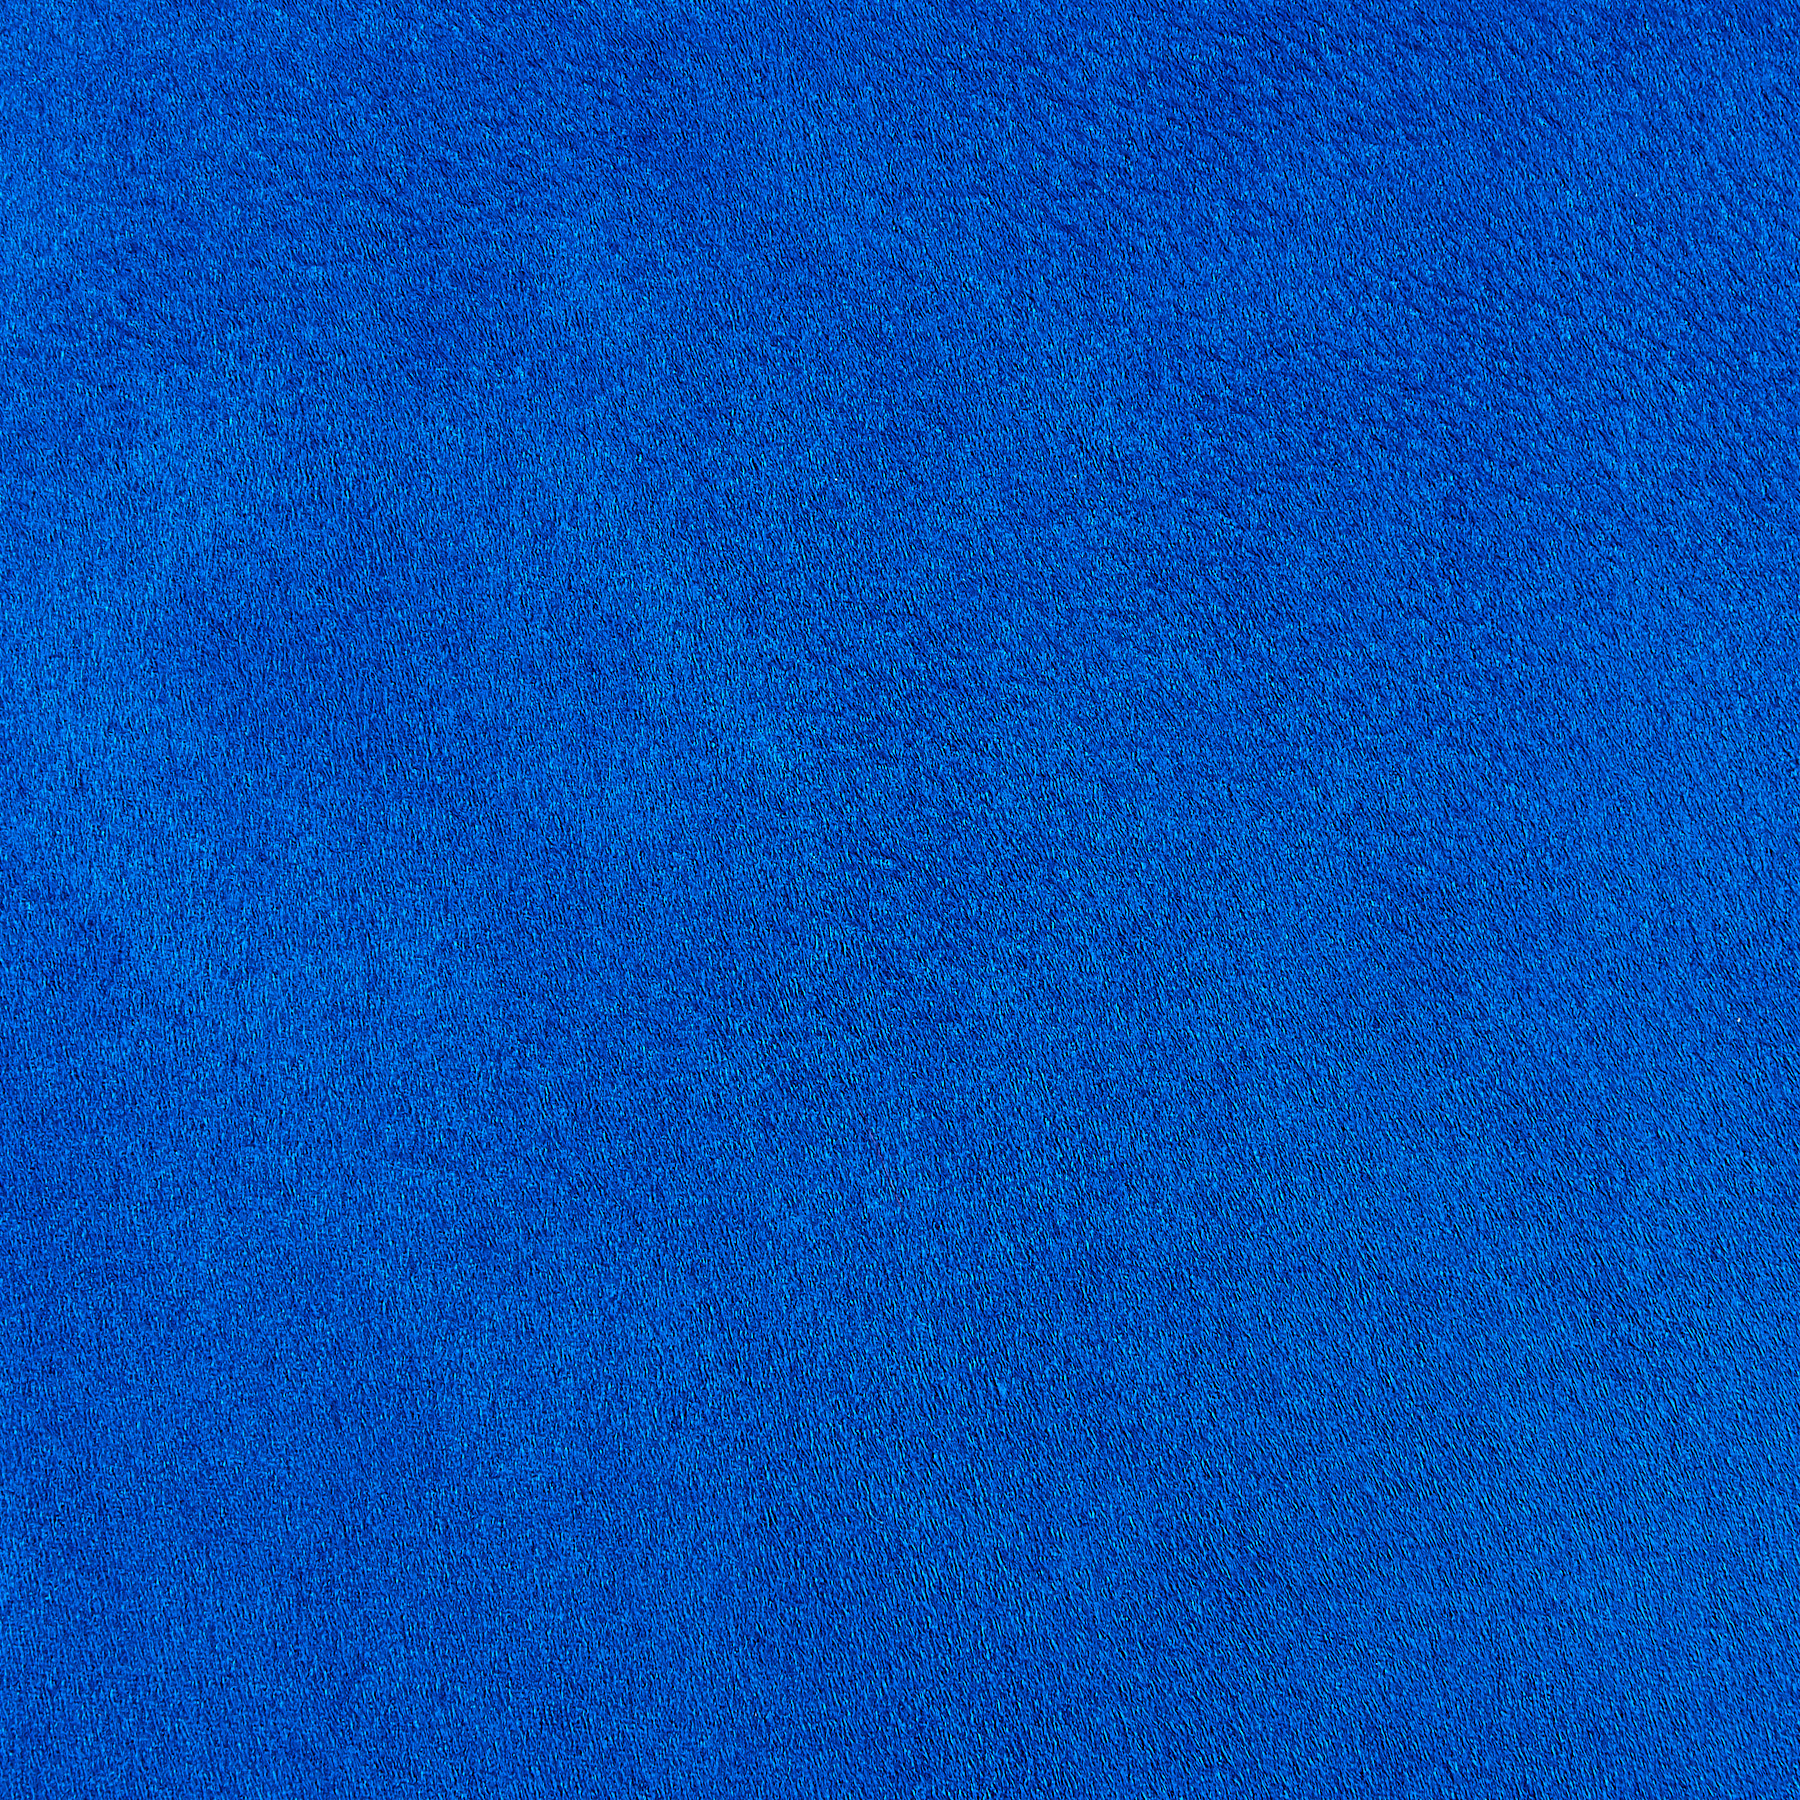 Vintage Suede Royal Fabric by Ben in USA